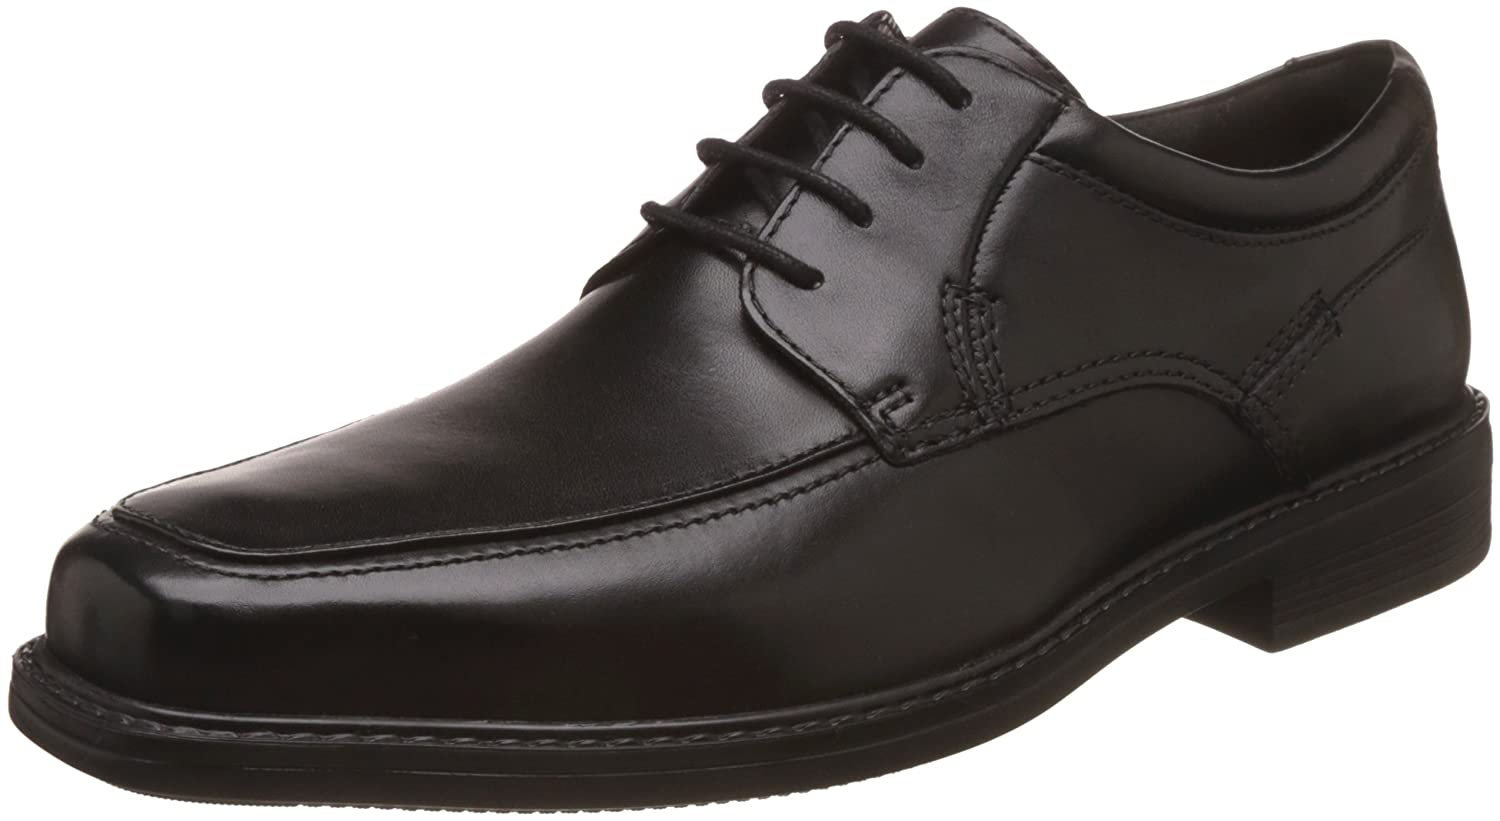 Bostonian by Clarks Men's Ipswich Apron Leather Formal Shoes